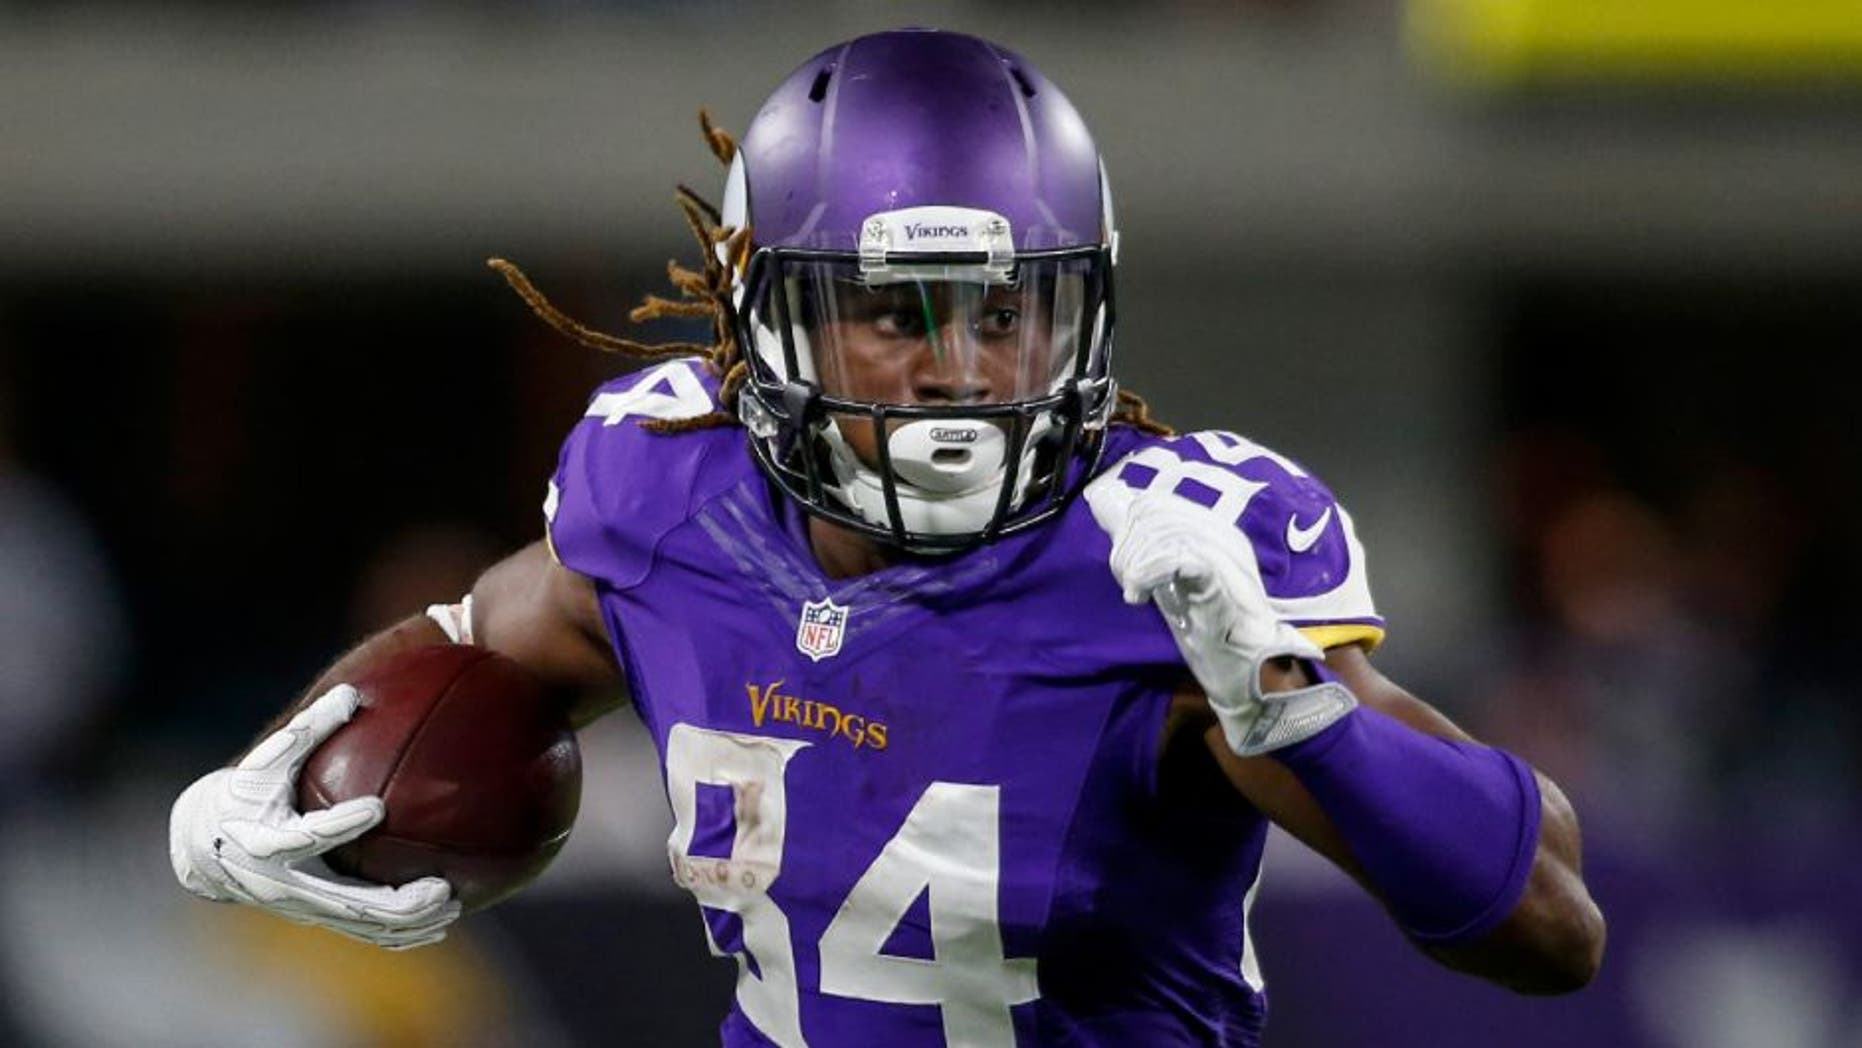 Minnesota Vikings wide receiver Cordarrelle Patterson catches a pass against the New York Giants.